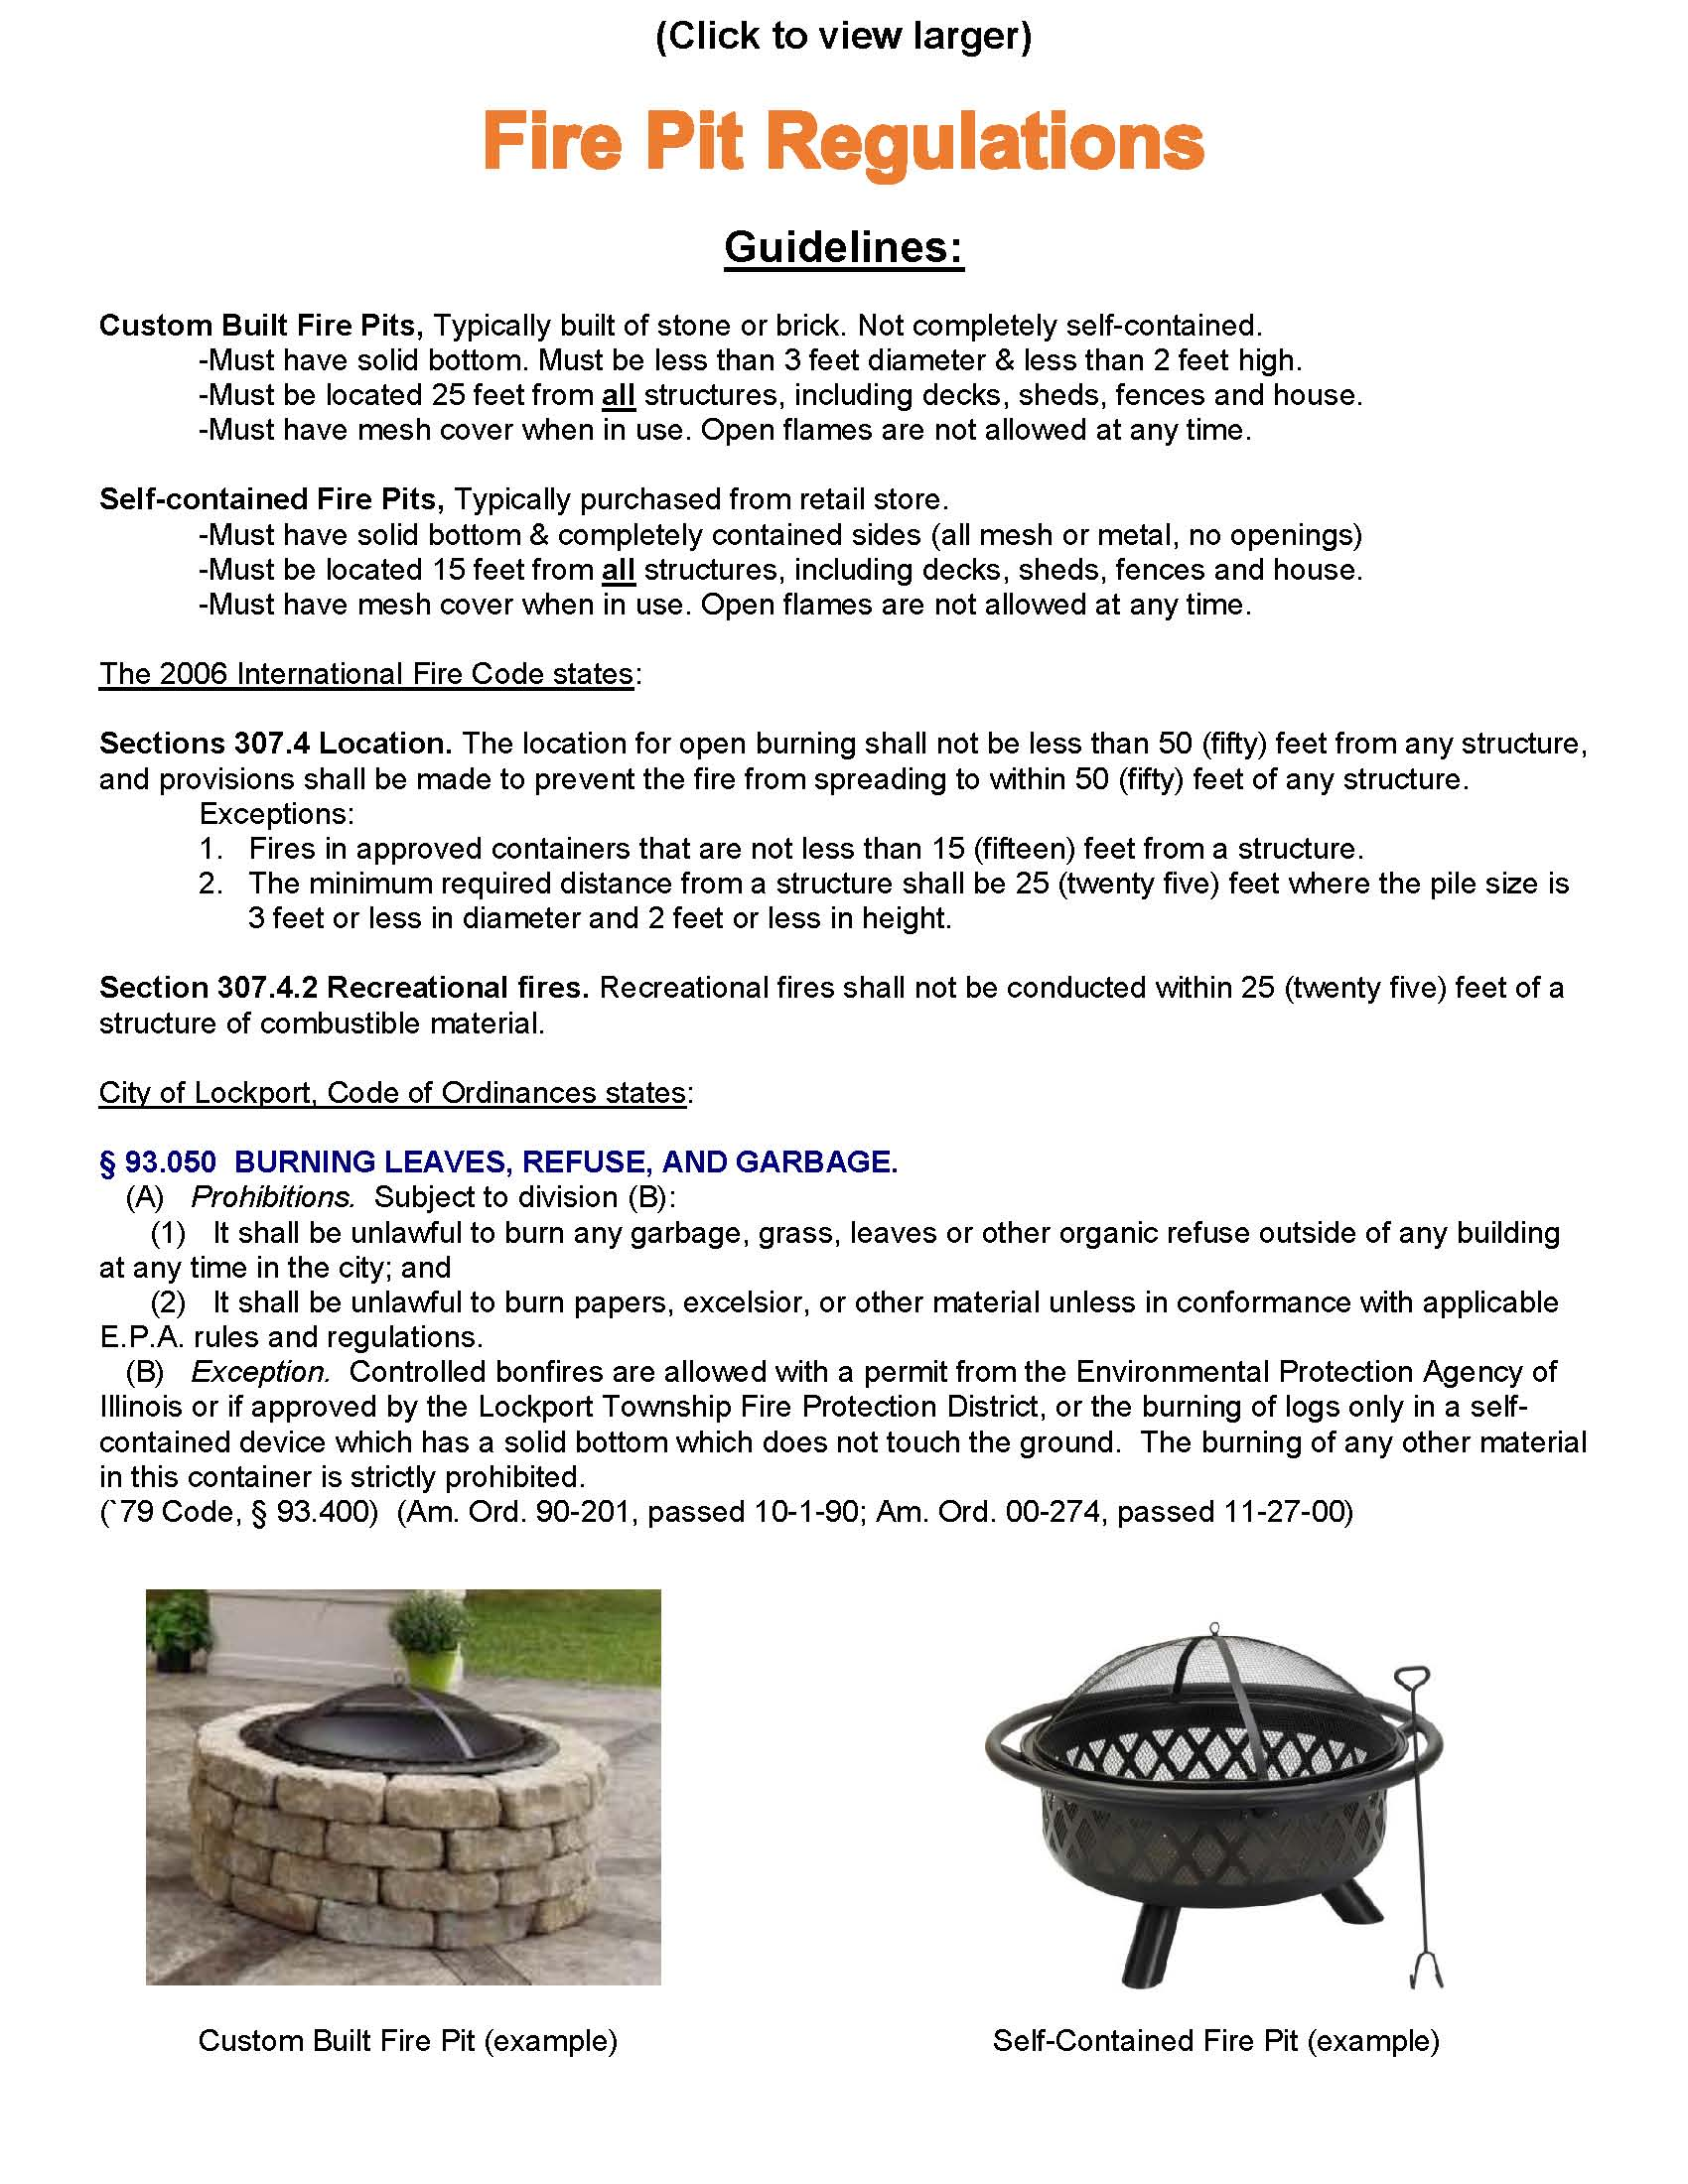 Fire Pit Regulations